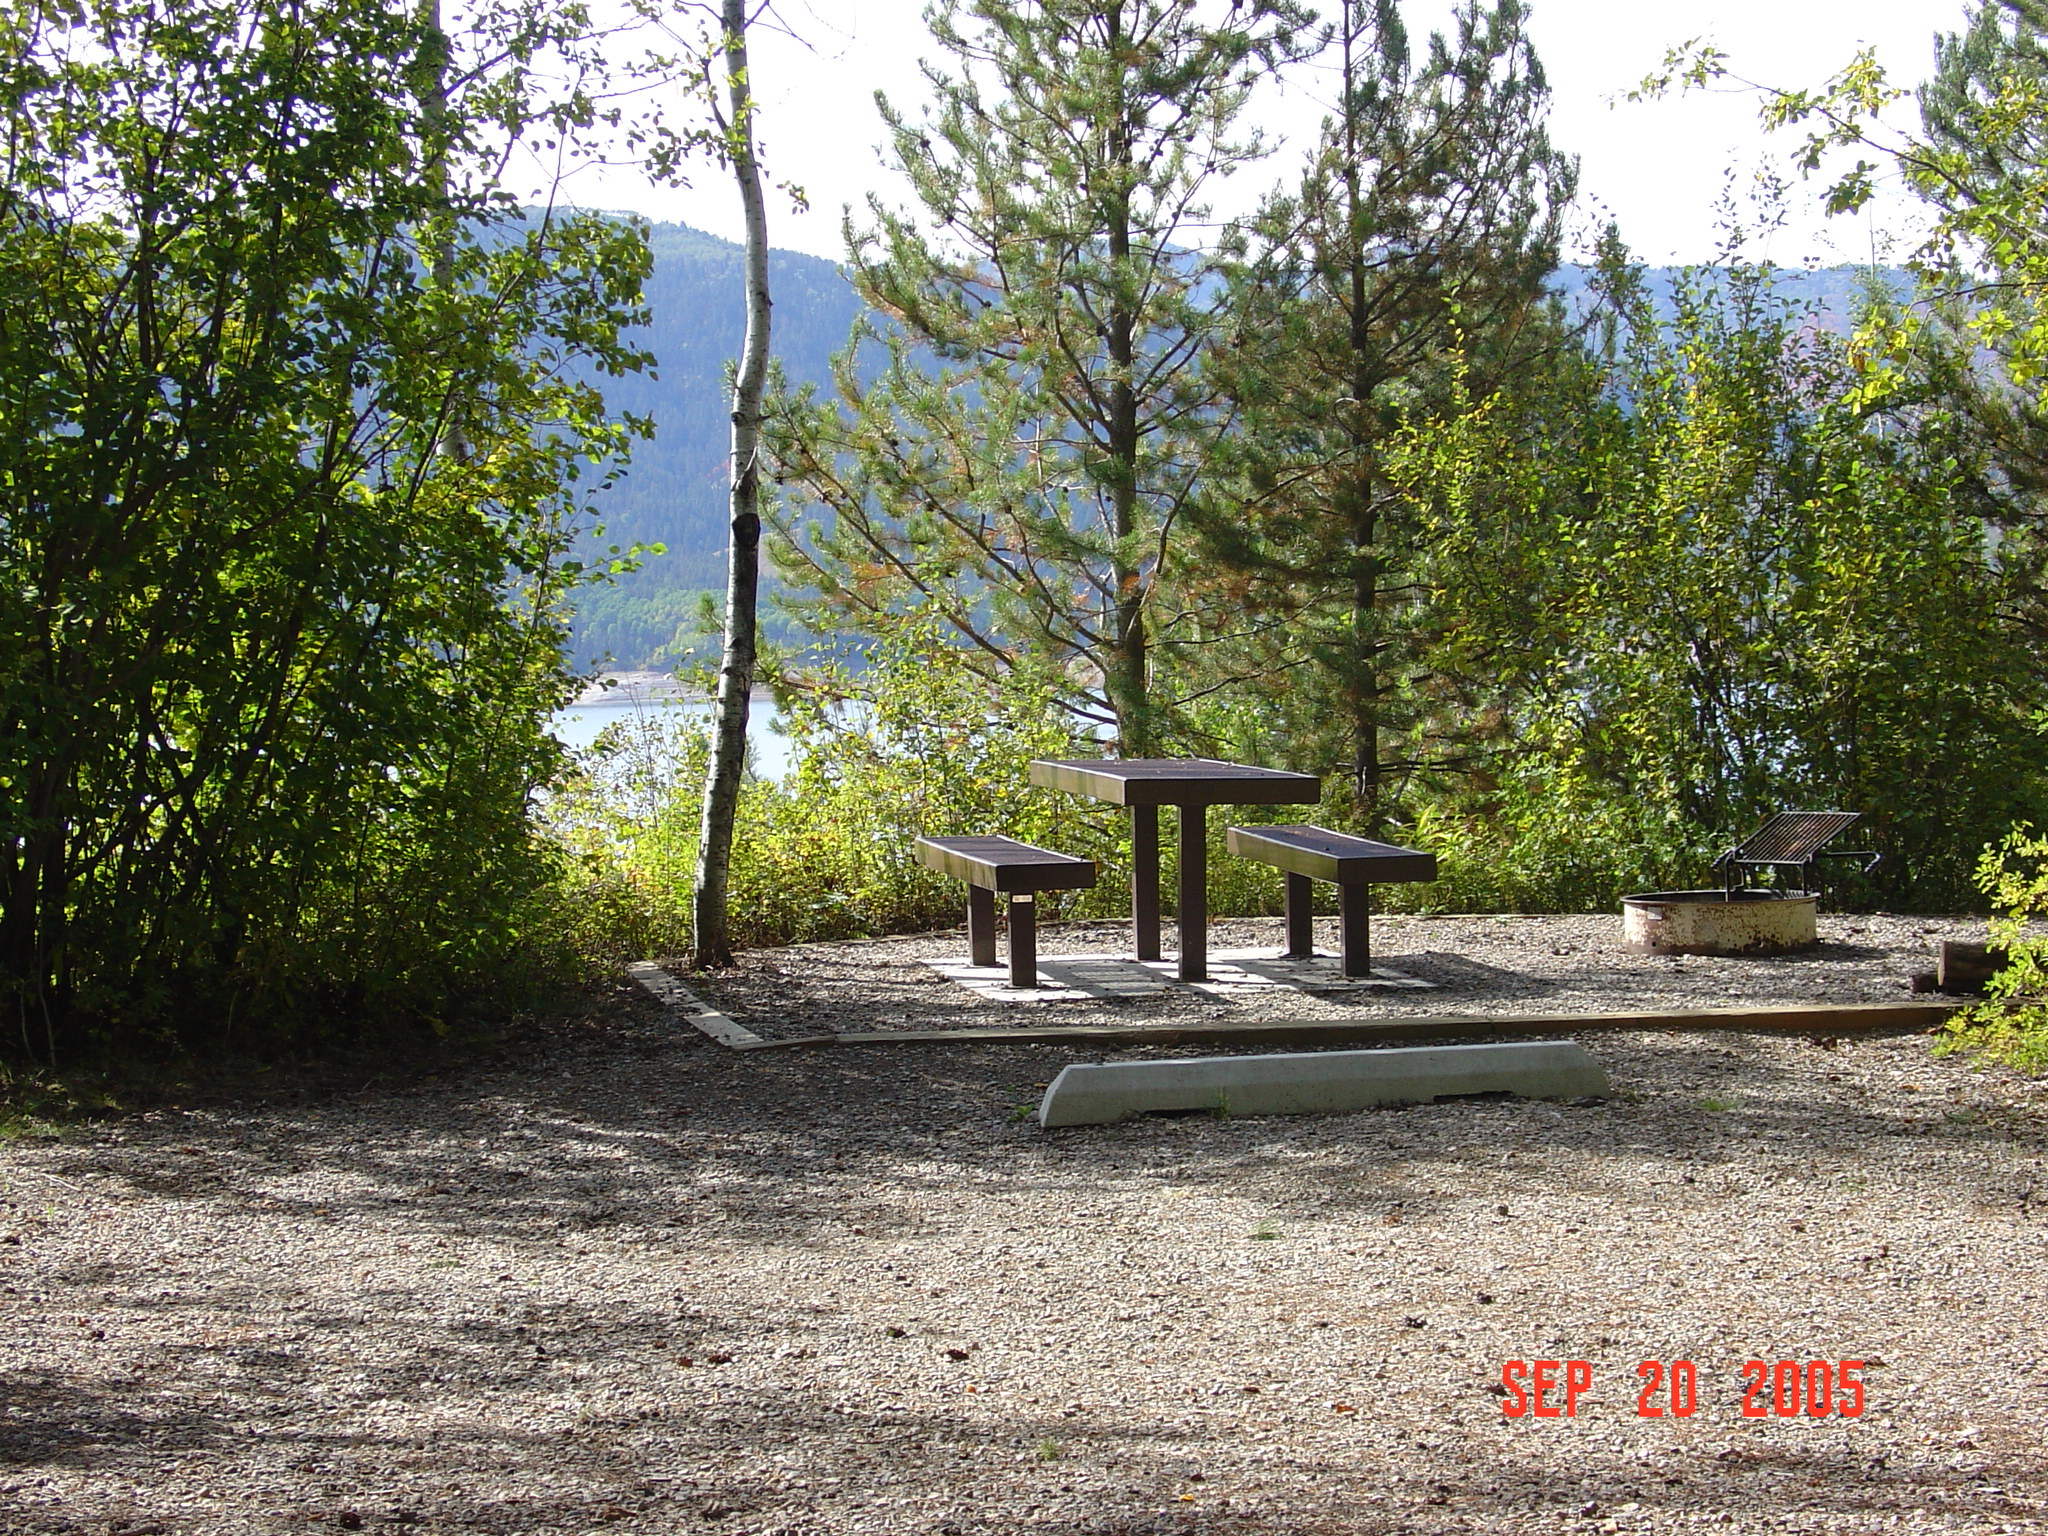 caribou targhee national forest blowout campground